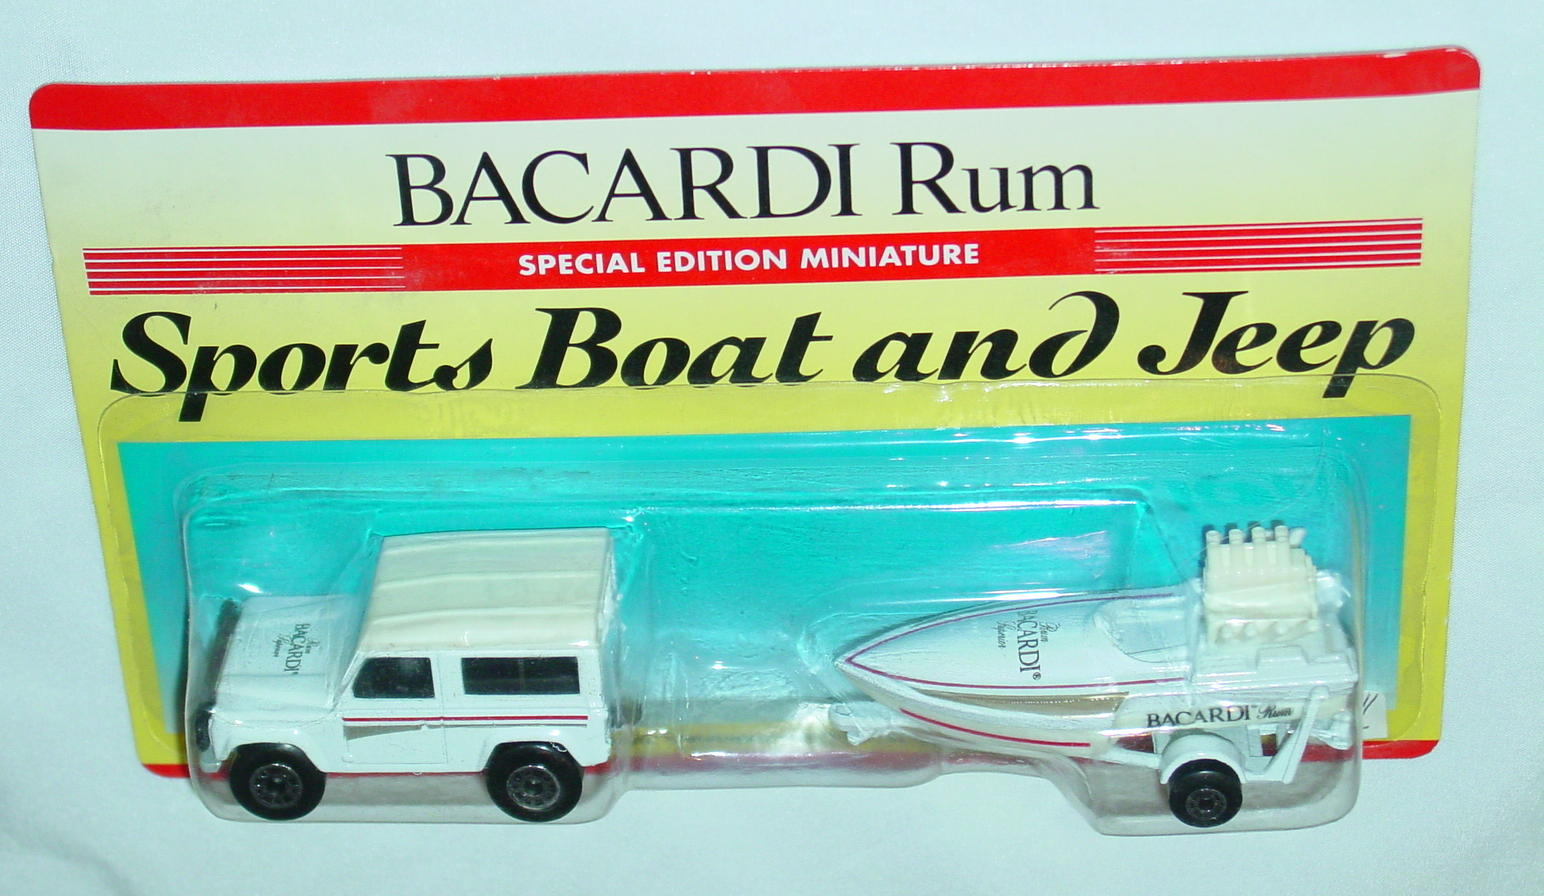 Twin Pack 121 A 2 - white 35F16 Land Rover white 5B17 BICARDI RUM C9.5